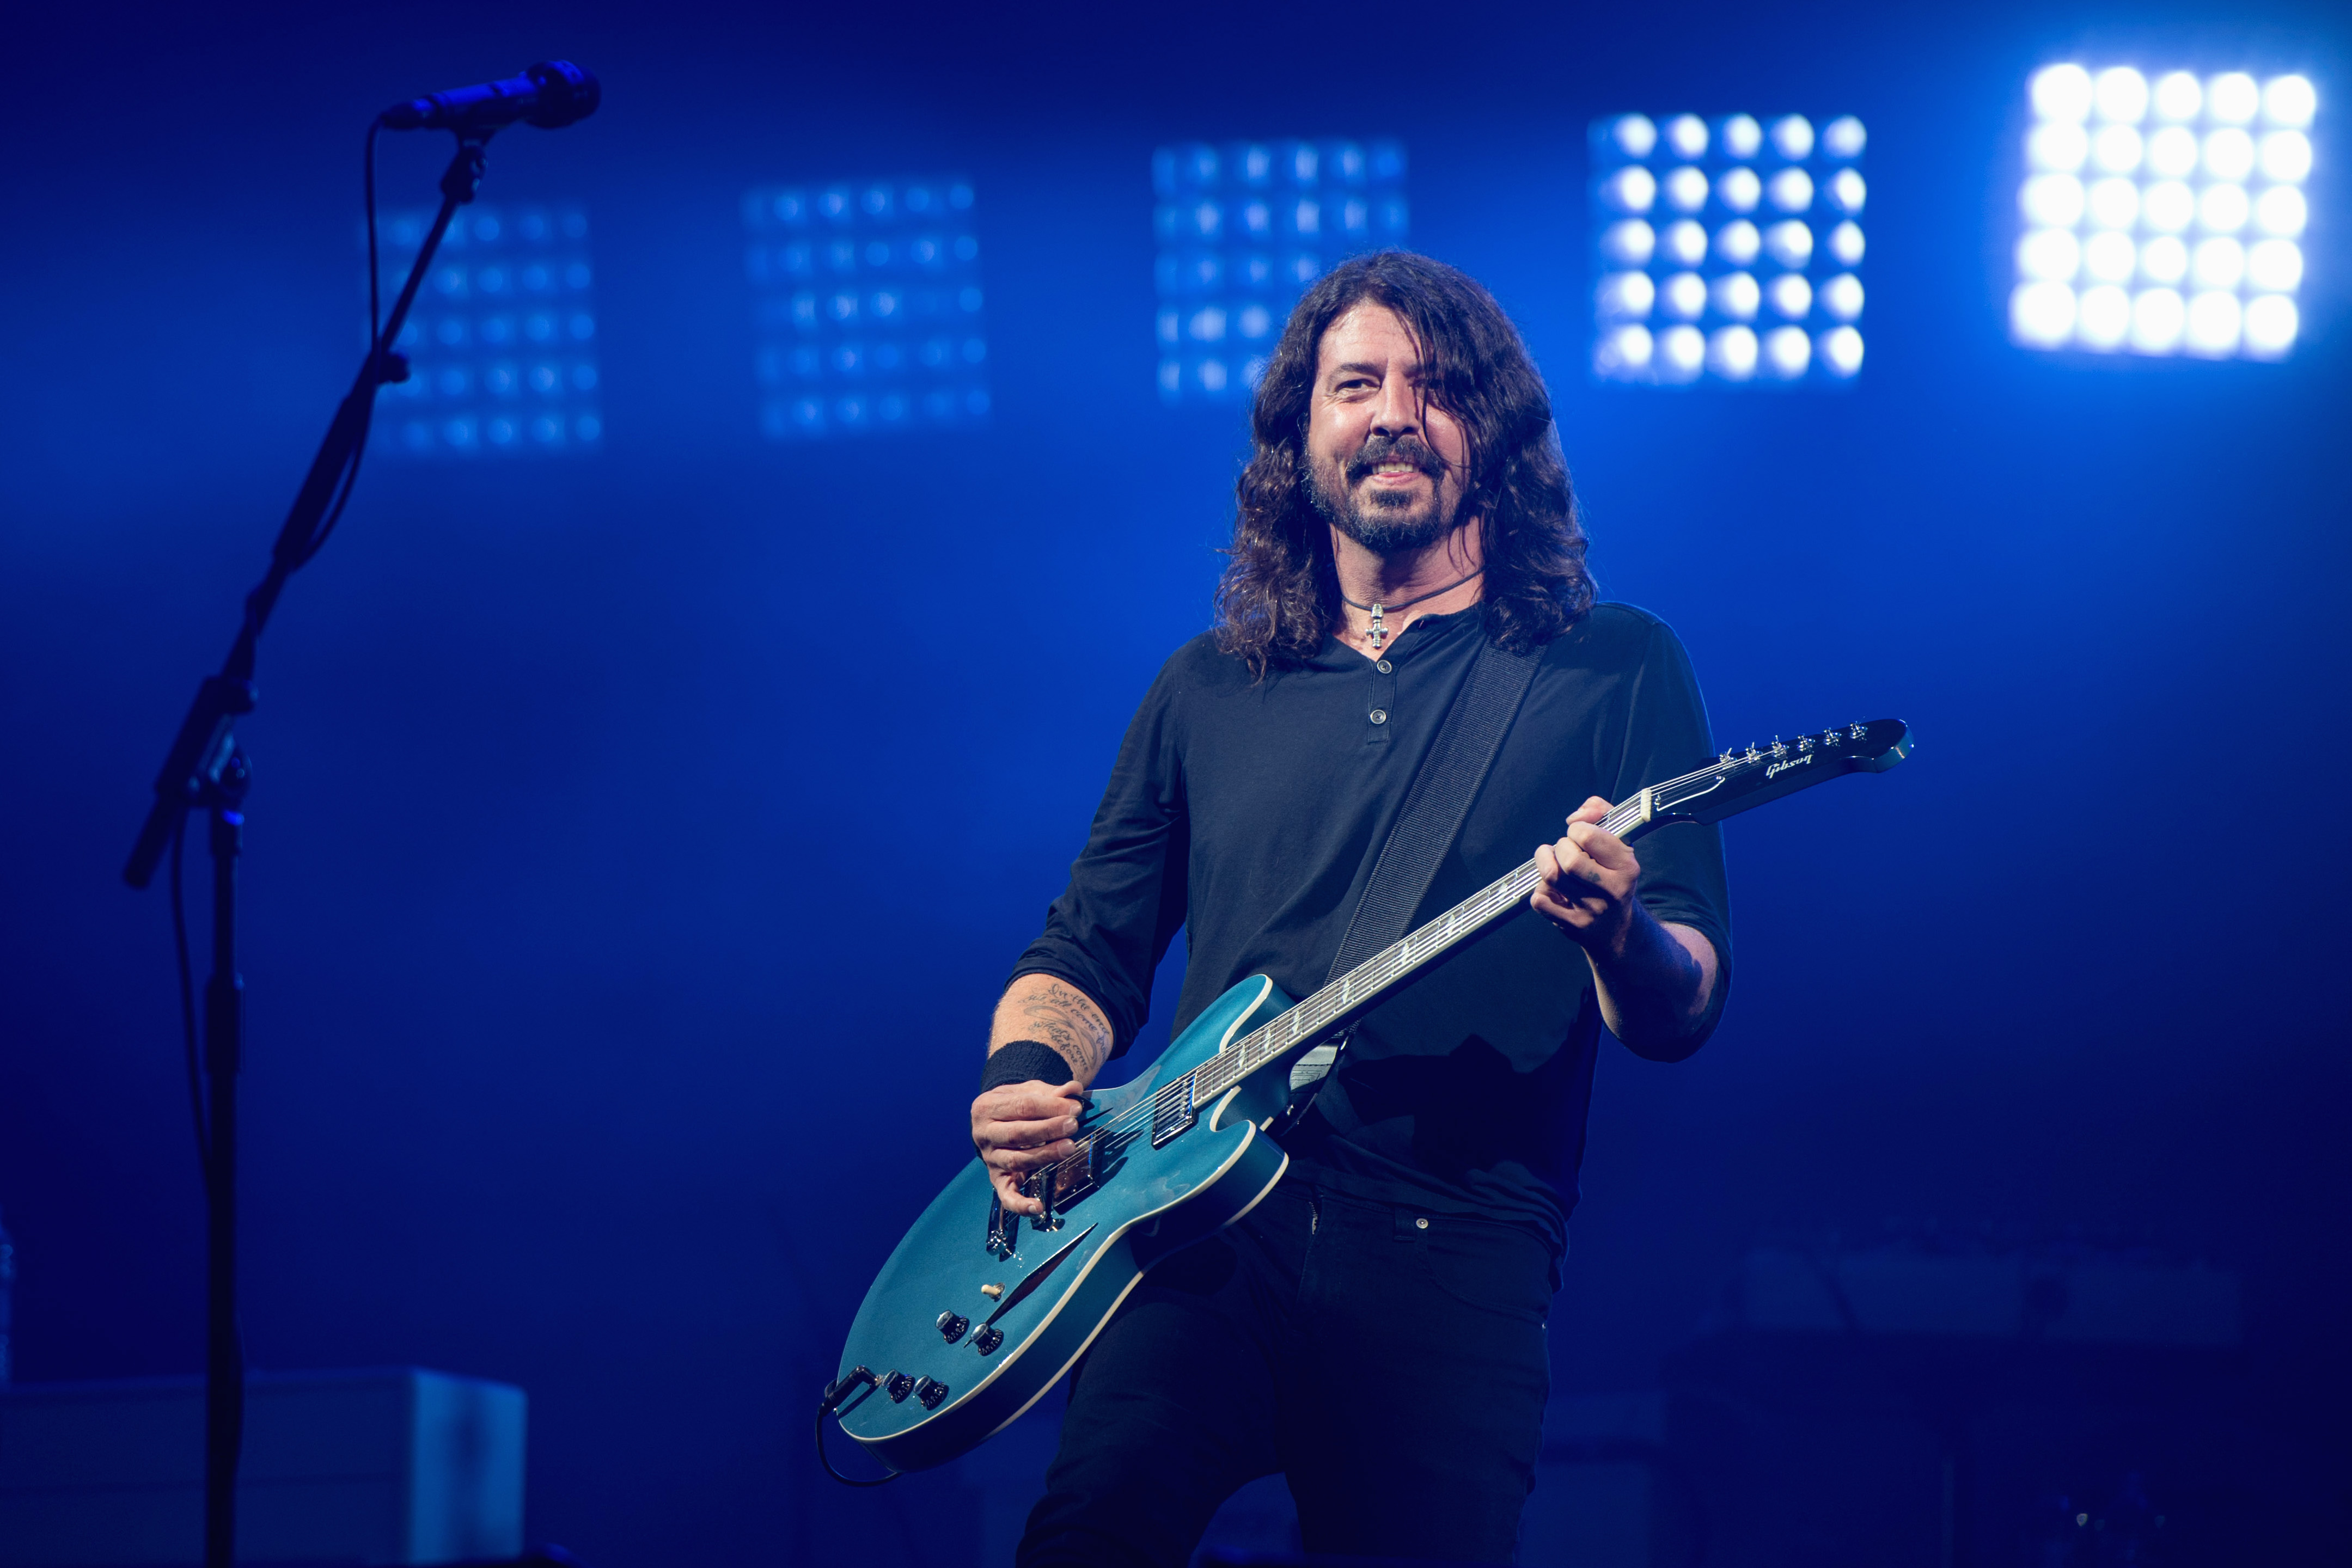 Dave Grohl Joined Guns N' Roses to Perform 'Paradise City' (Kinda) in California [VIDEO]